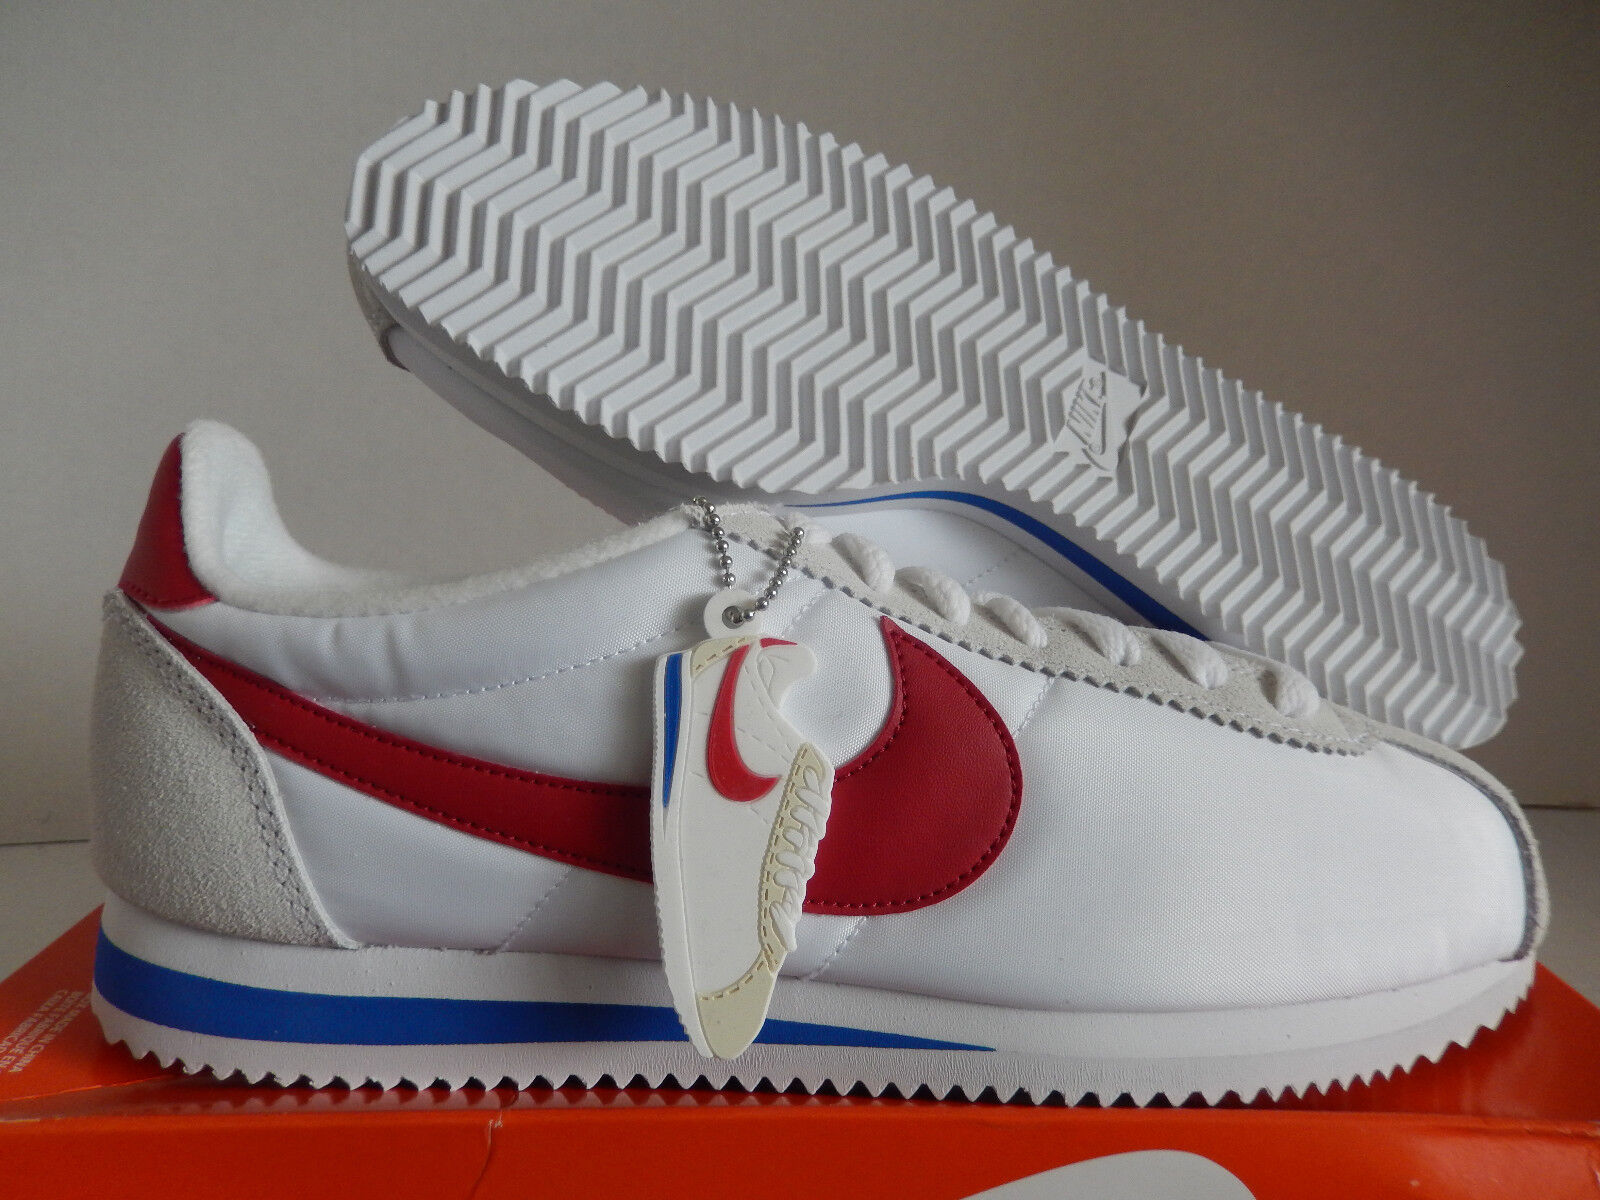 Nike classico cortez - qs forrest gump white-red sz 8 [847709-164]